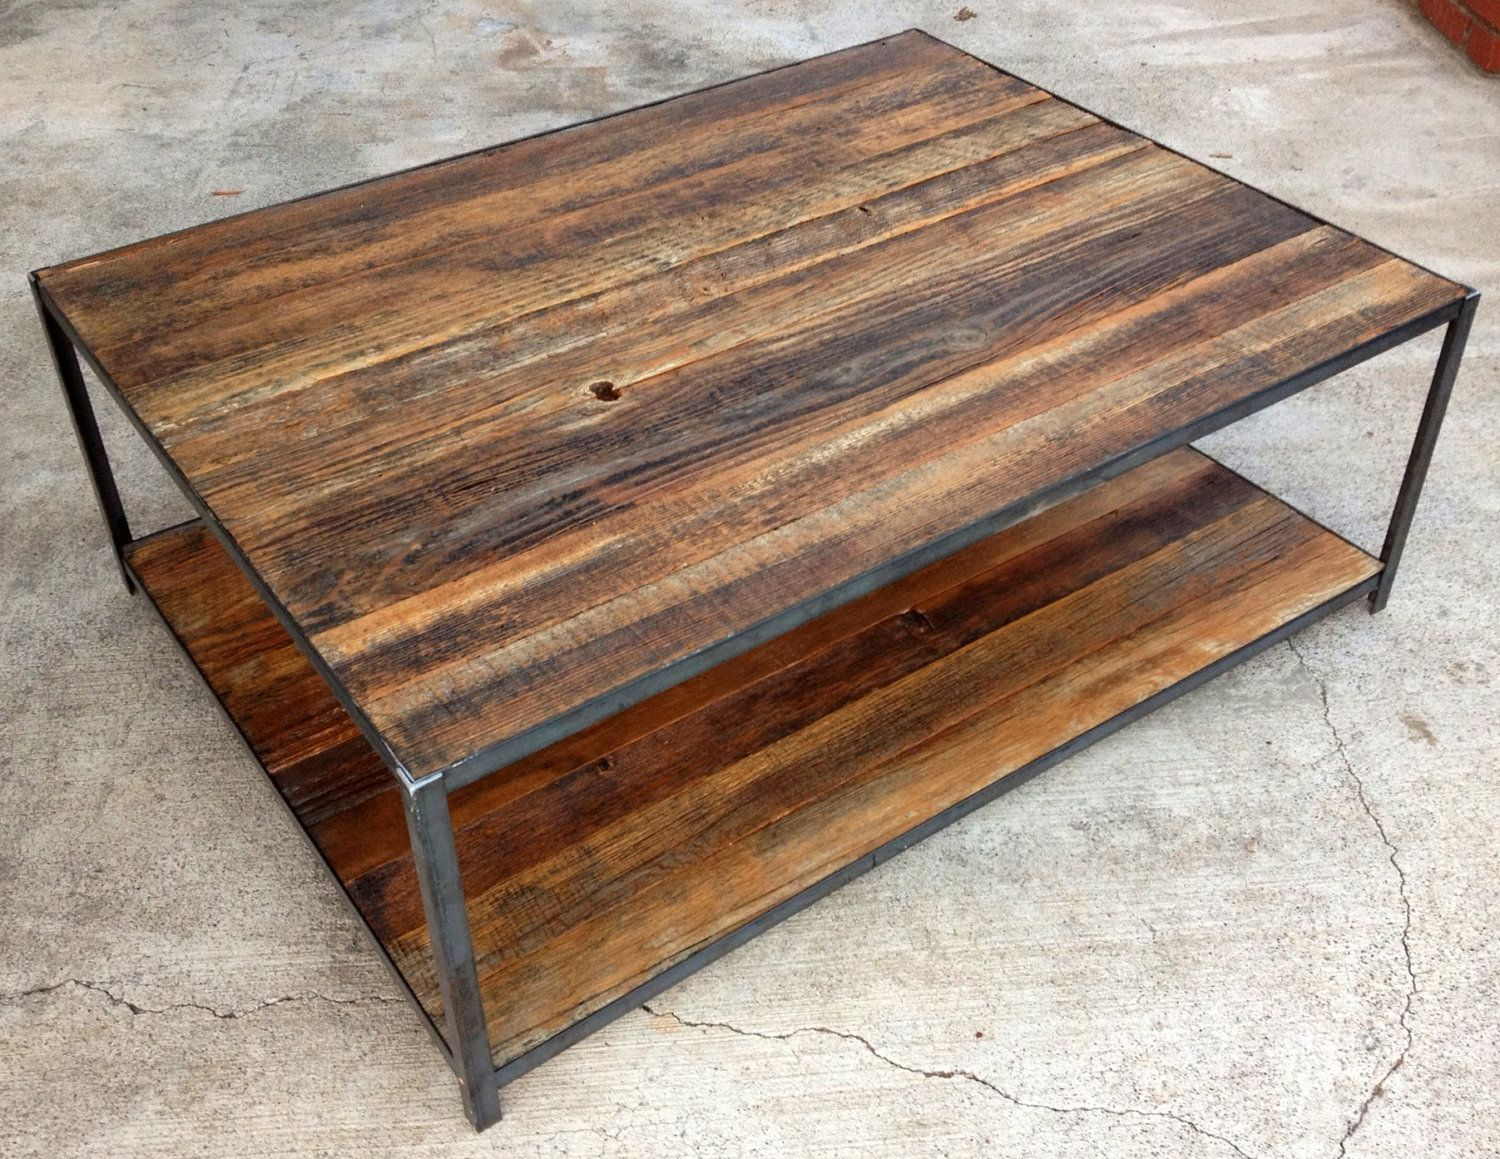 Reclaimed Wood and Angle Iron Coffee Table   400 00  via Etsy. Reclaimed Wood and Angle Iron Coffee Table   400 00  via Etsy